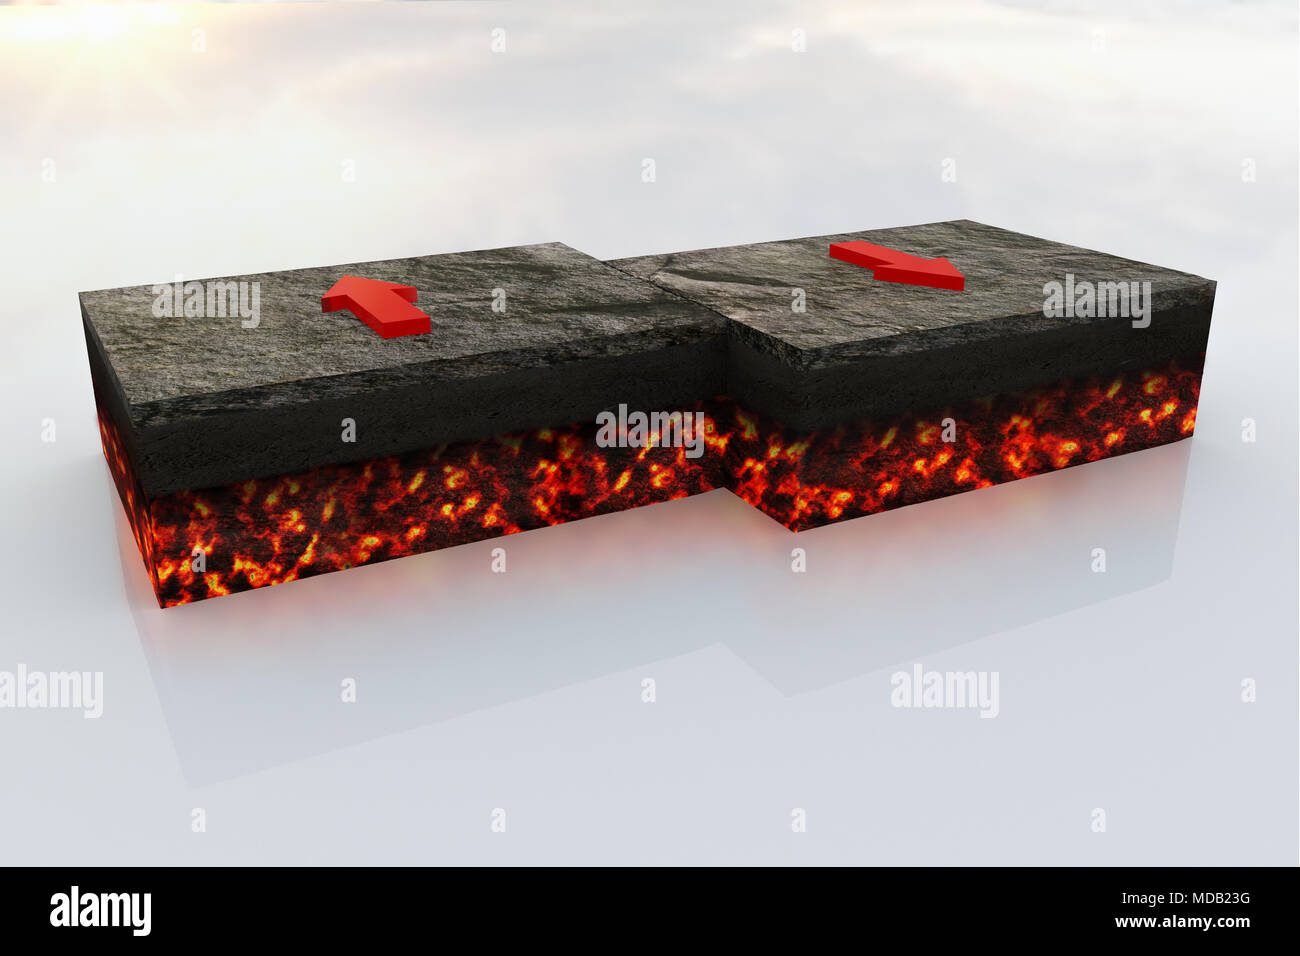 Transform  - Divergent - Convergent Plate Boundary. High quality 3D iluustrations - Stock Image